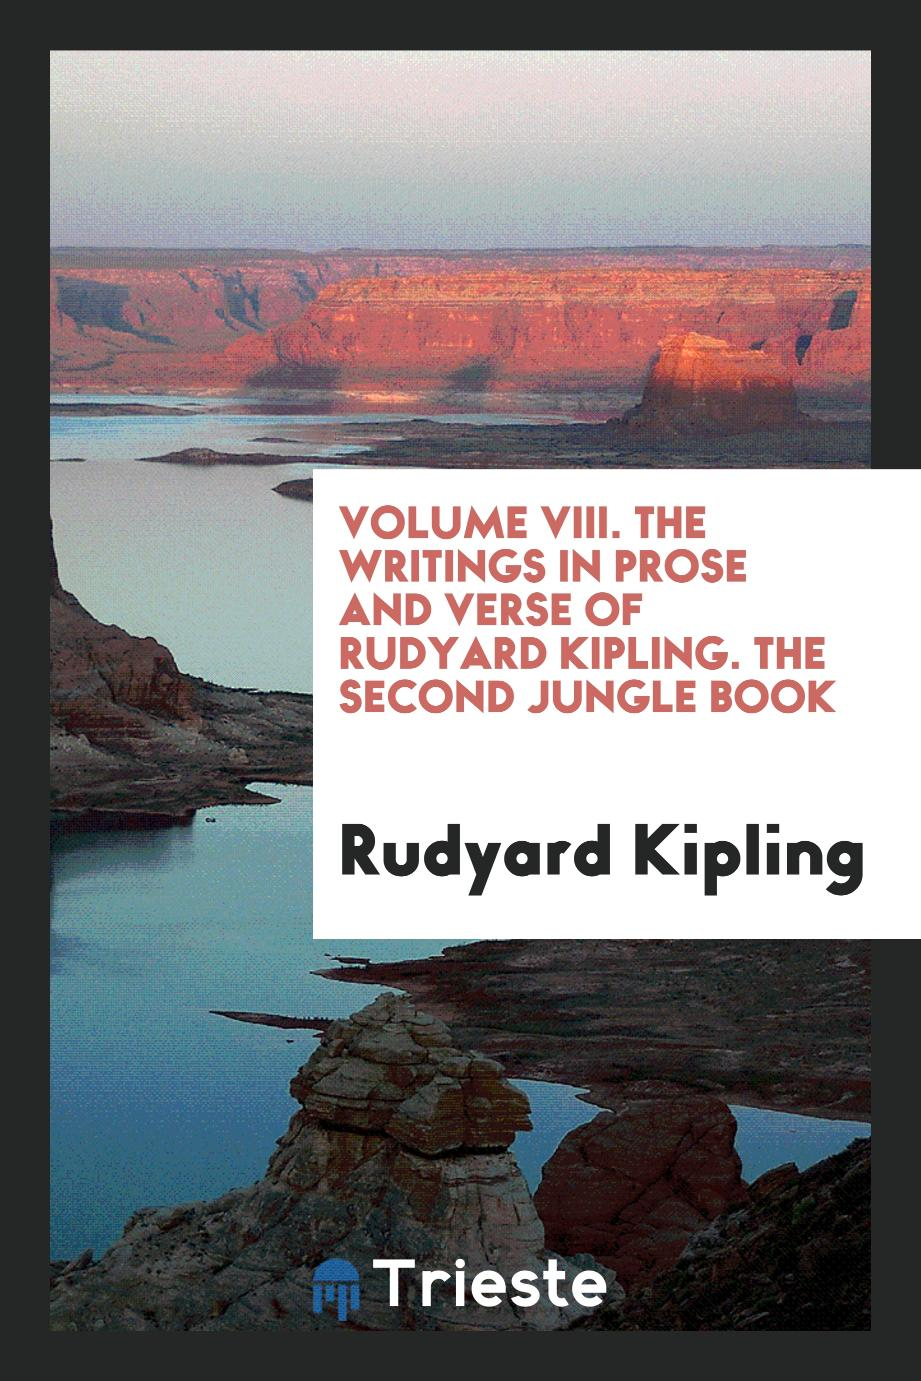 Volume VIII. The Writings in Prose and Verse of Rudyard Kipling. The Second Jungle Book